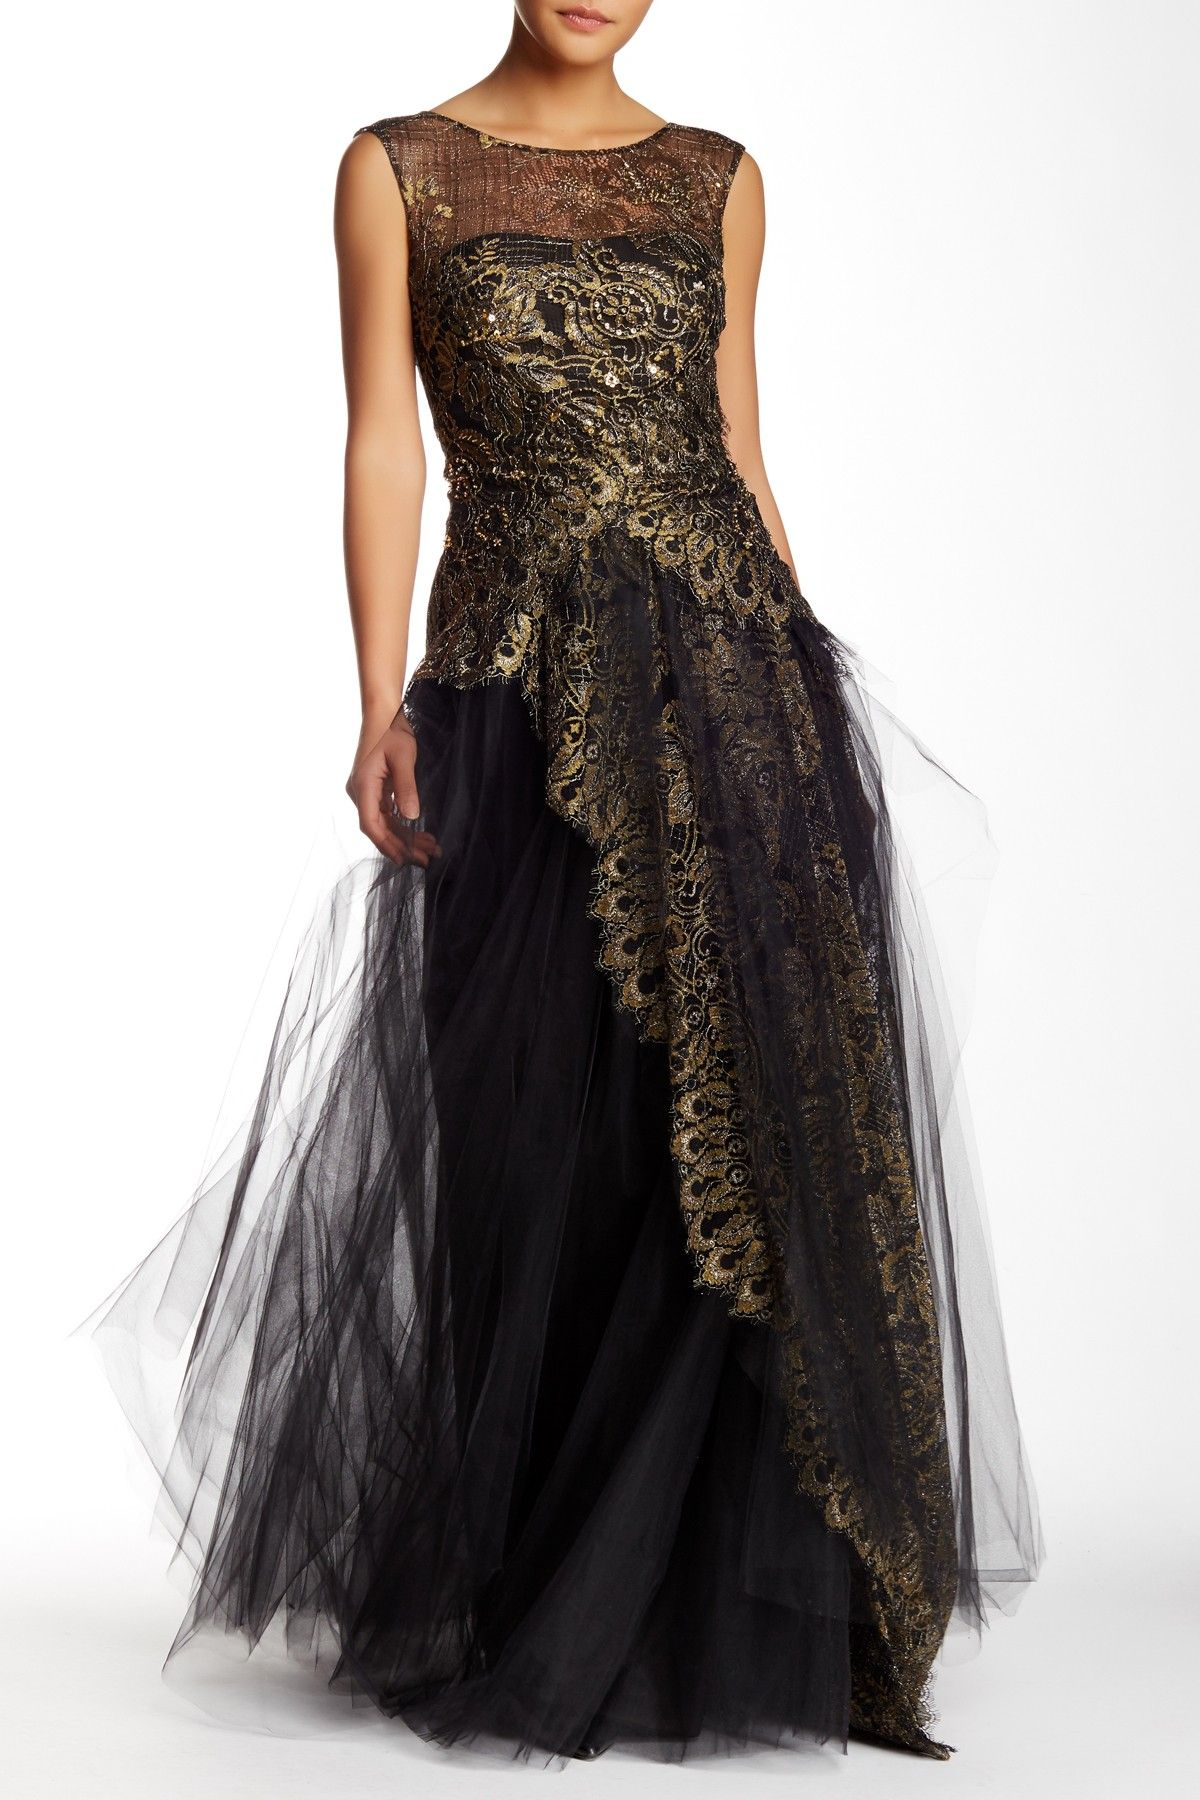 38a5c176b54d Marchesa Notte | Lace and Tulle Full Length Gown | Nordstrom Rack Sponsored  by Nordstrom Rack.